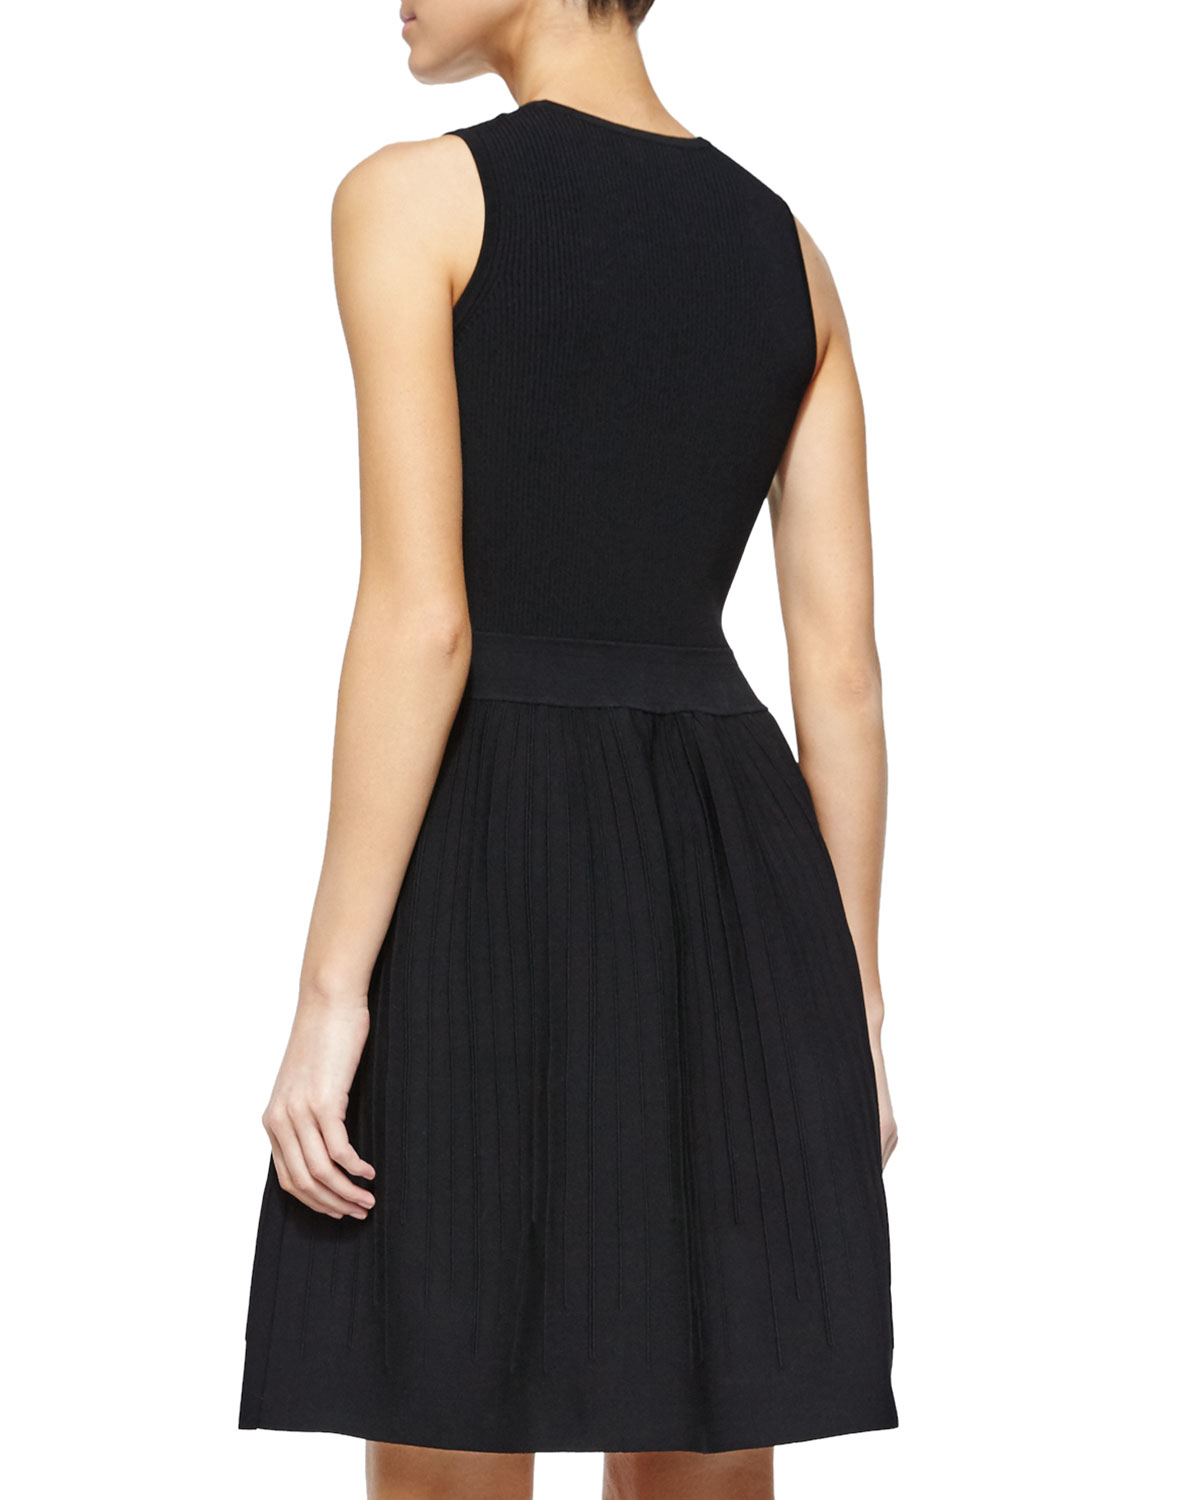 210f575e503 Lyst - Opening Ceremony Sleeveless Fit   Flare Dress in Black